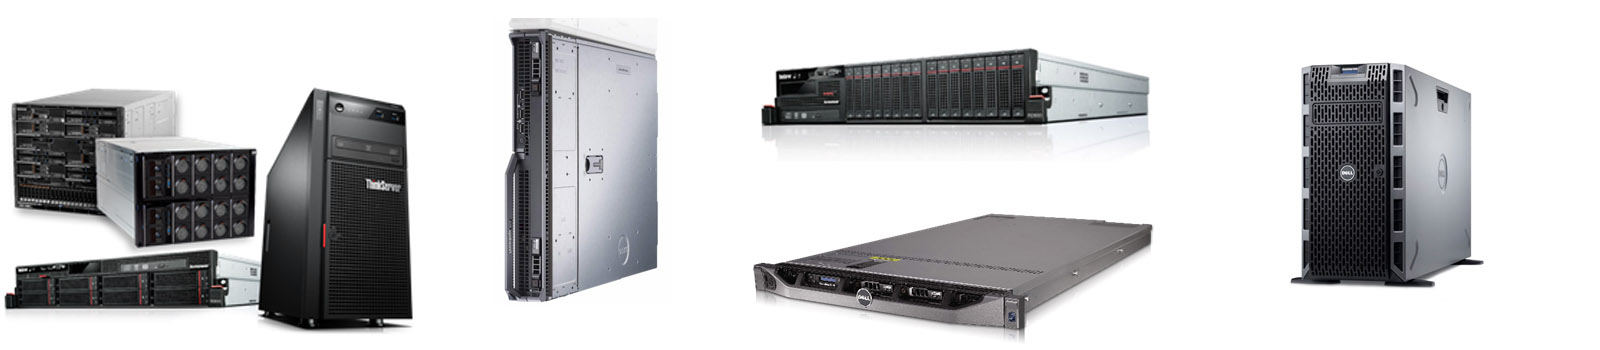 New Used Refurbished Dell Poweredge Servers for Rental/Sale